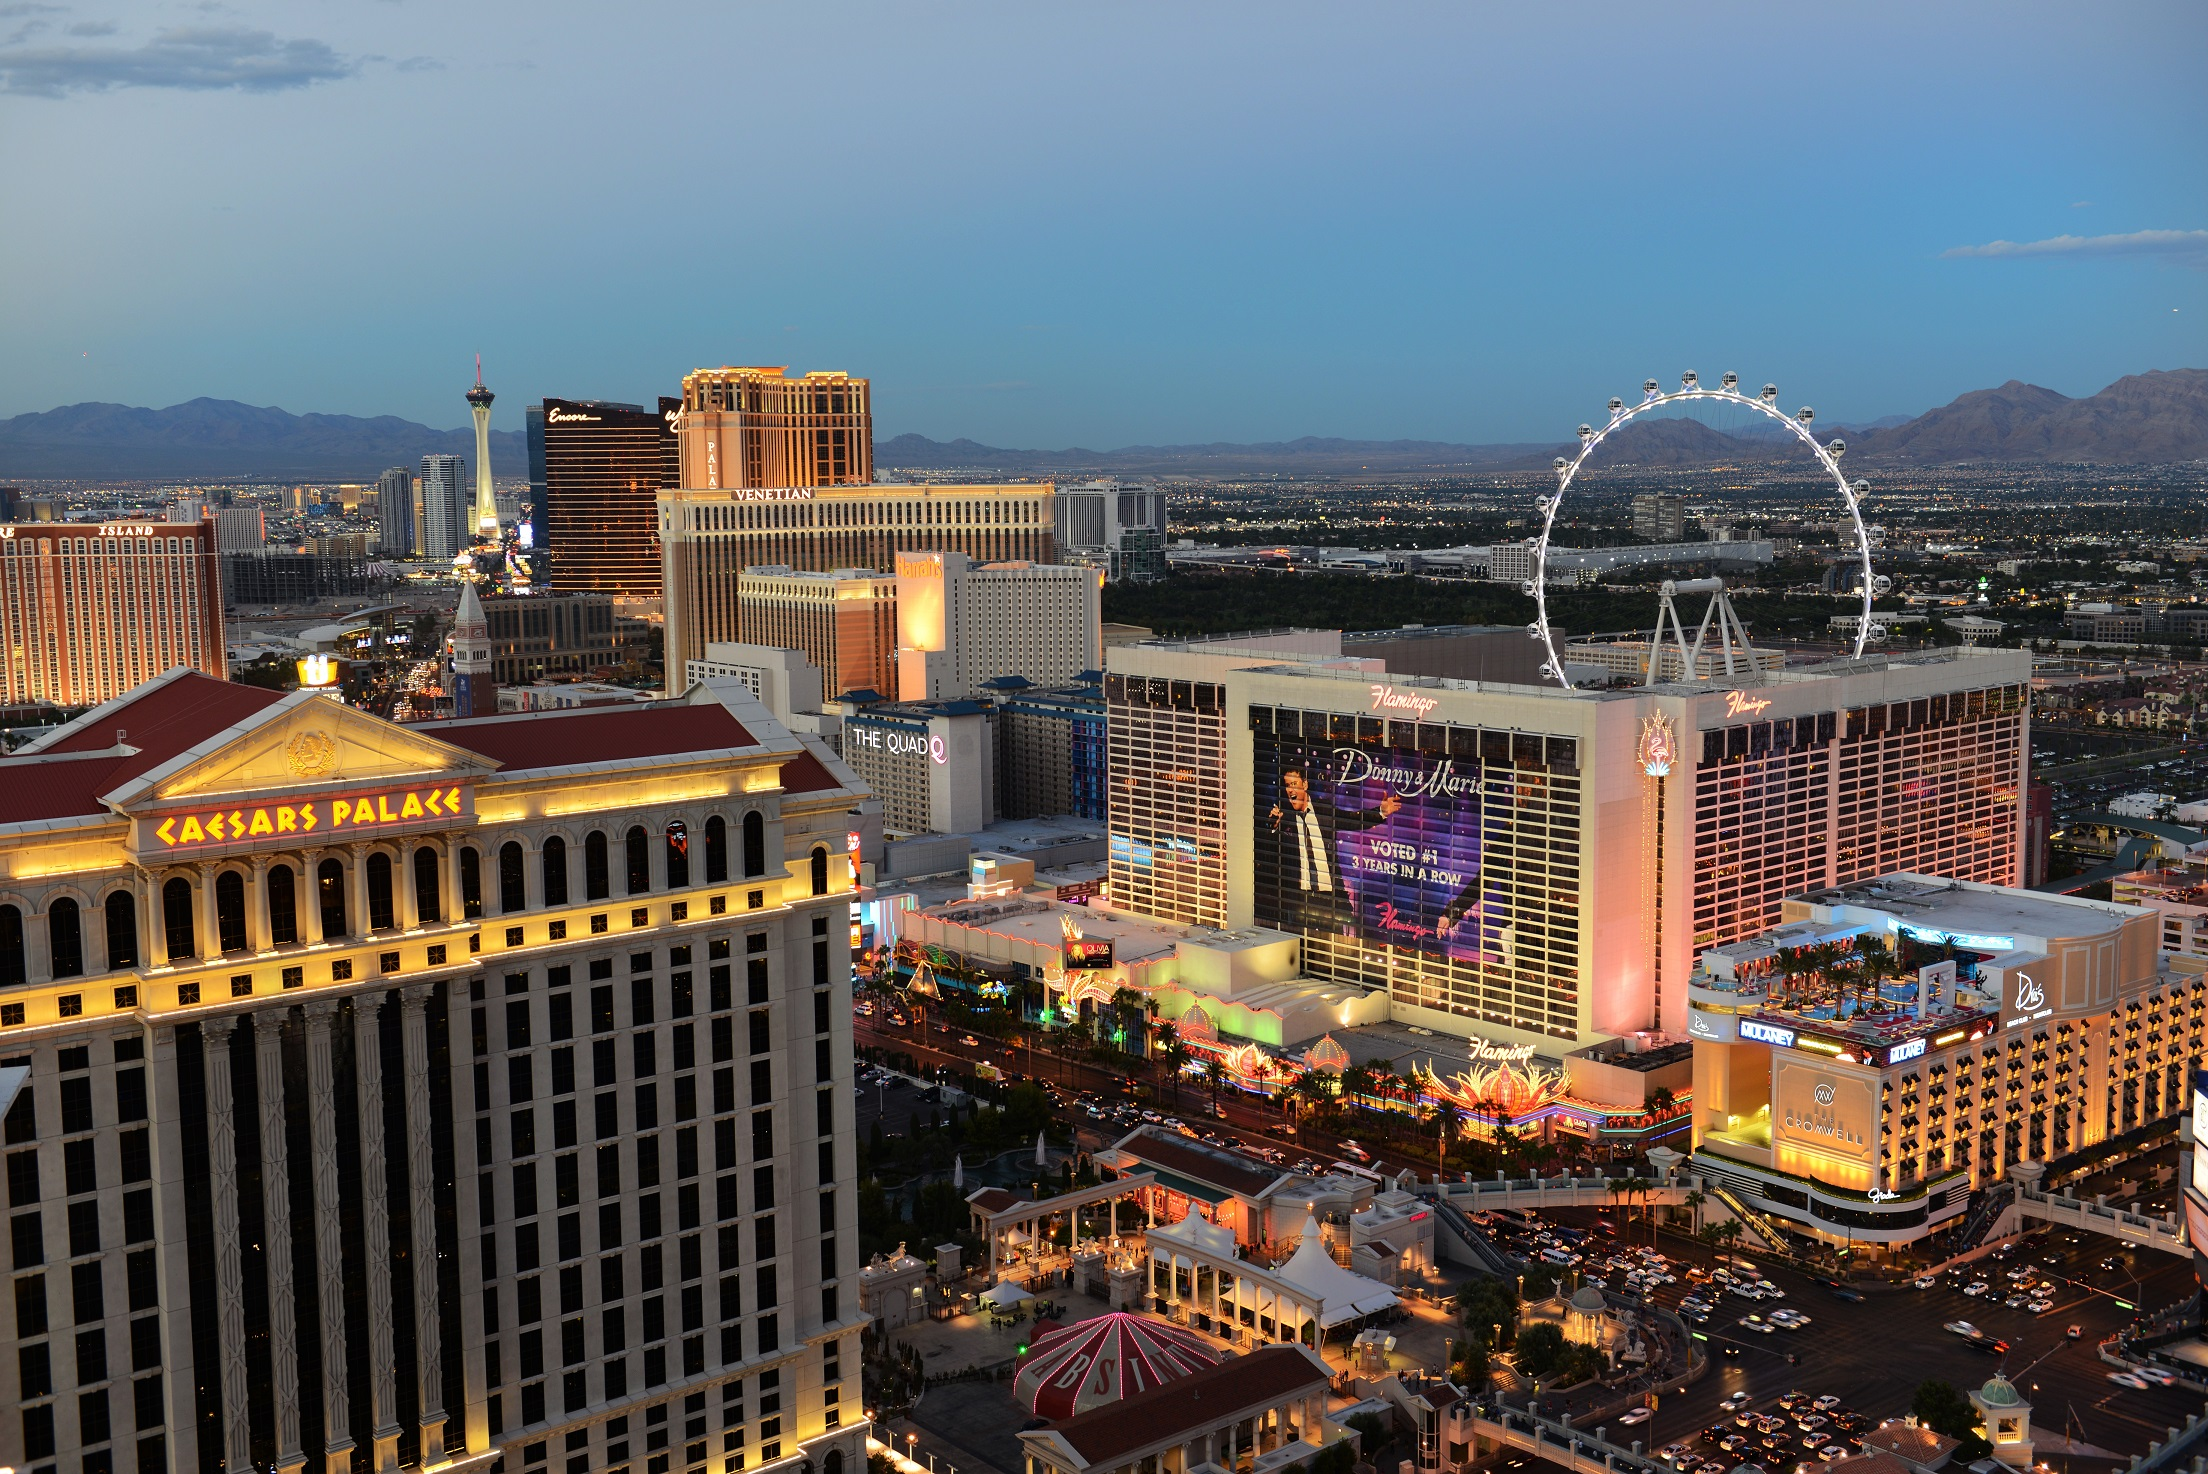 Las Vegas Casinos Reinventing The Strip To Attract New